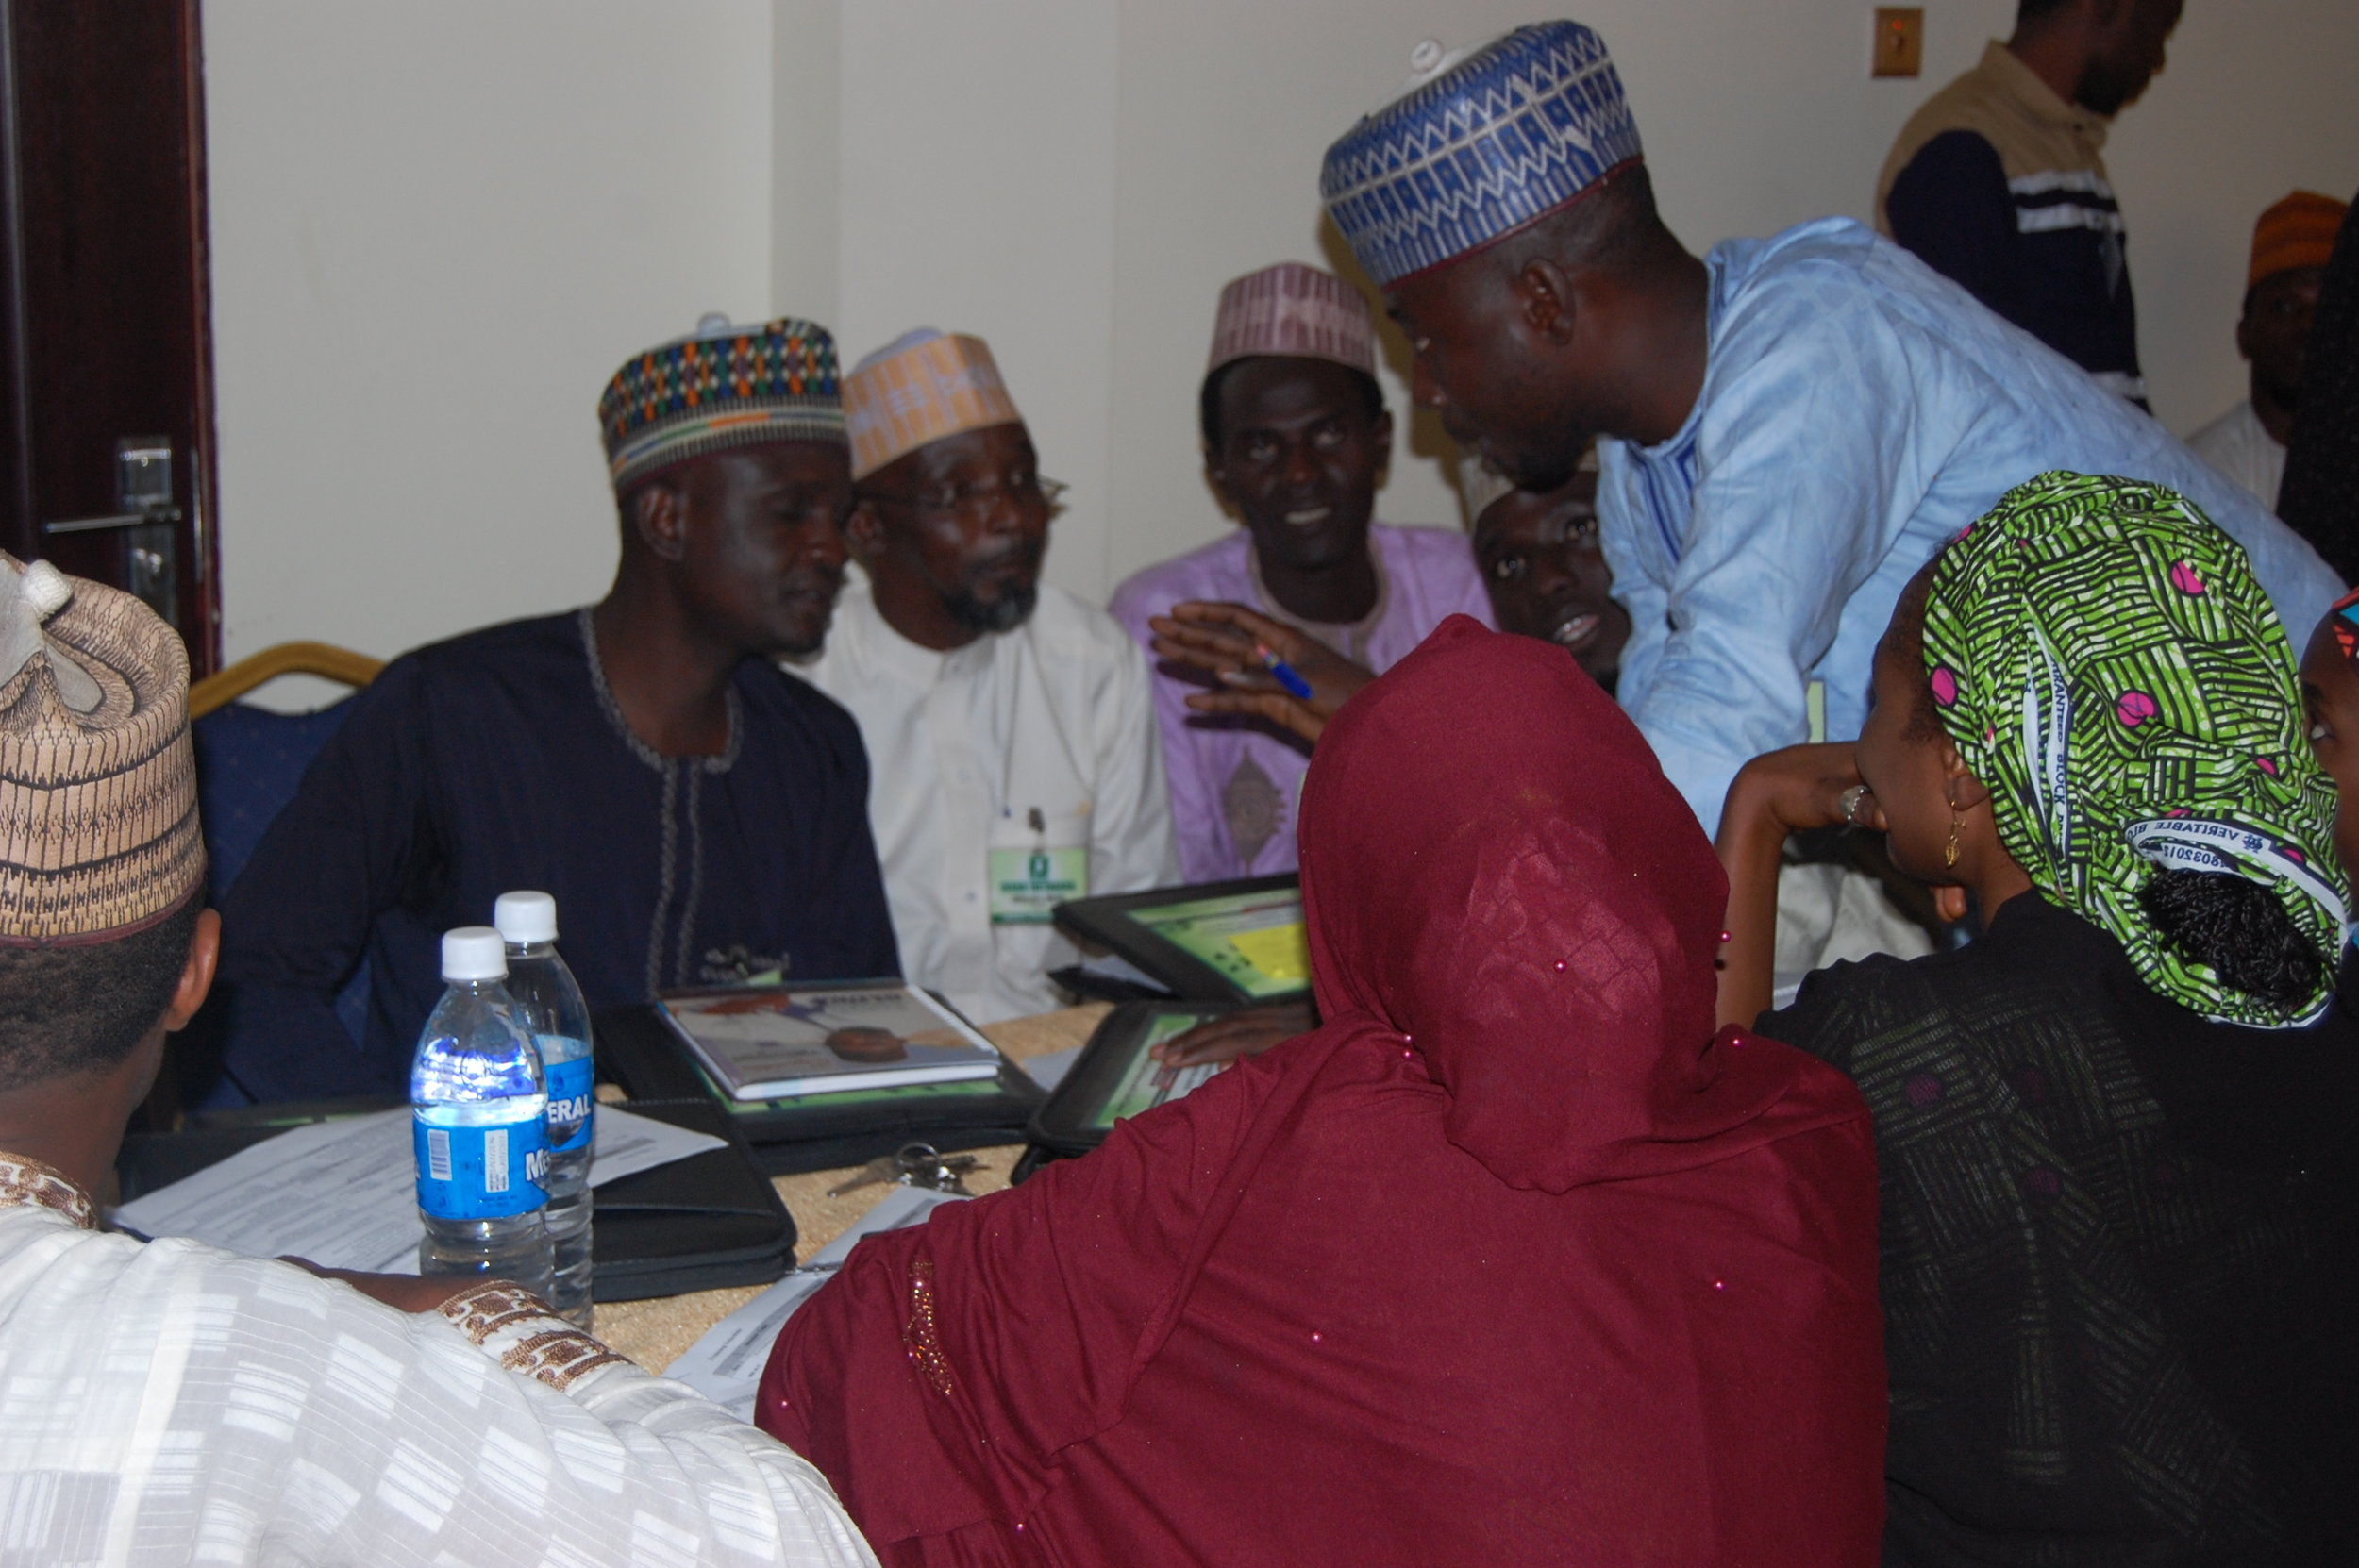 Participants discussing their project during the group work session.